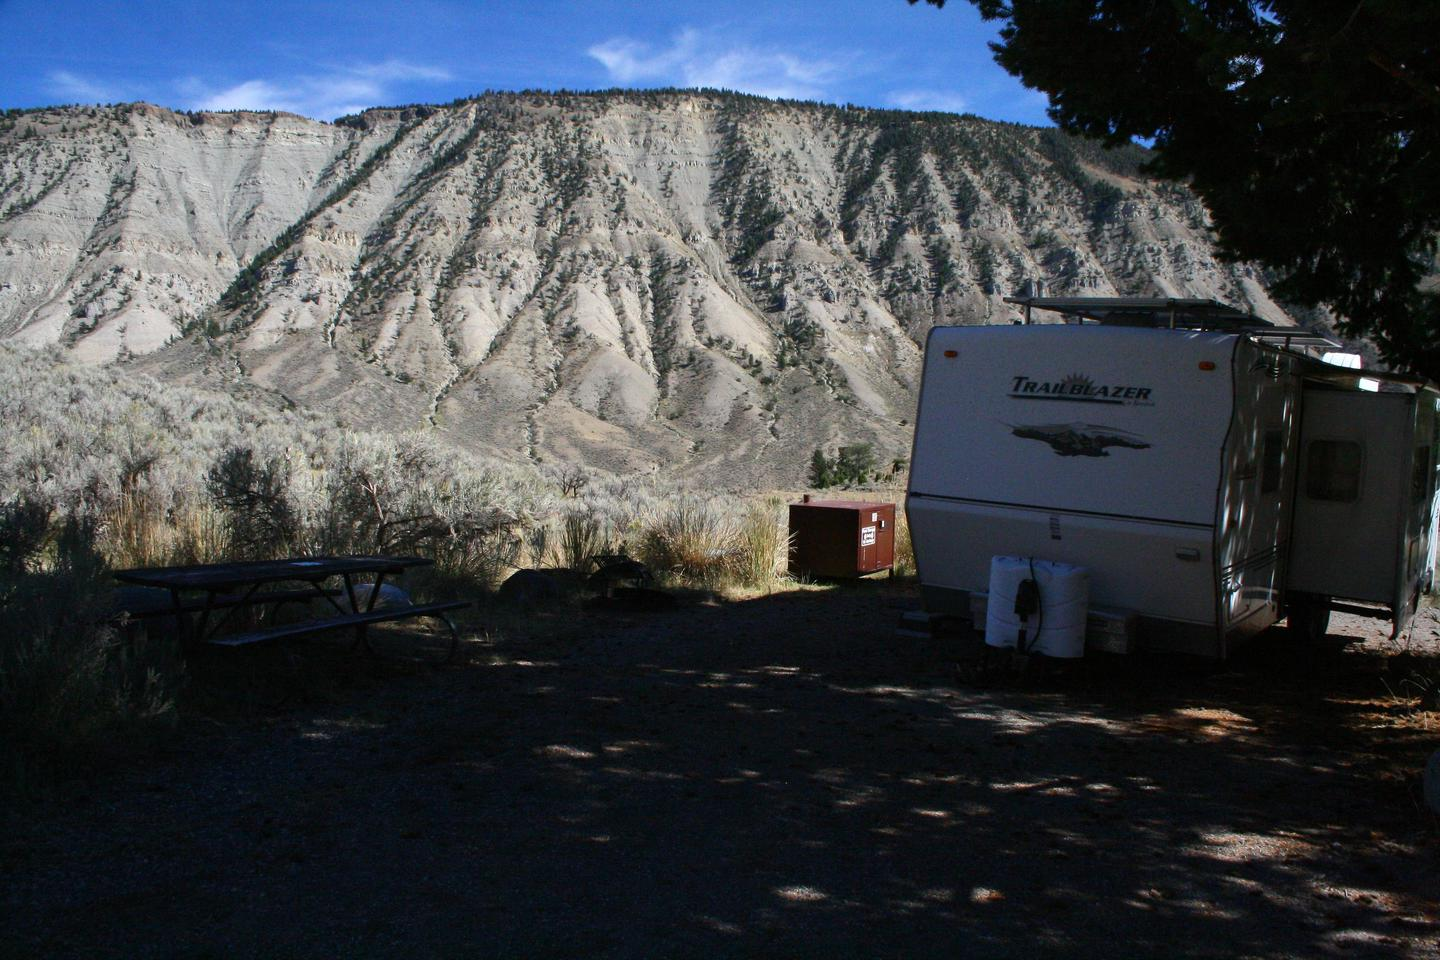 Mammoth Hot Springs Campground Site 46.Mammoth Campsite #46